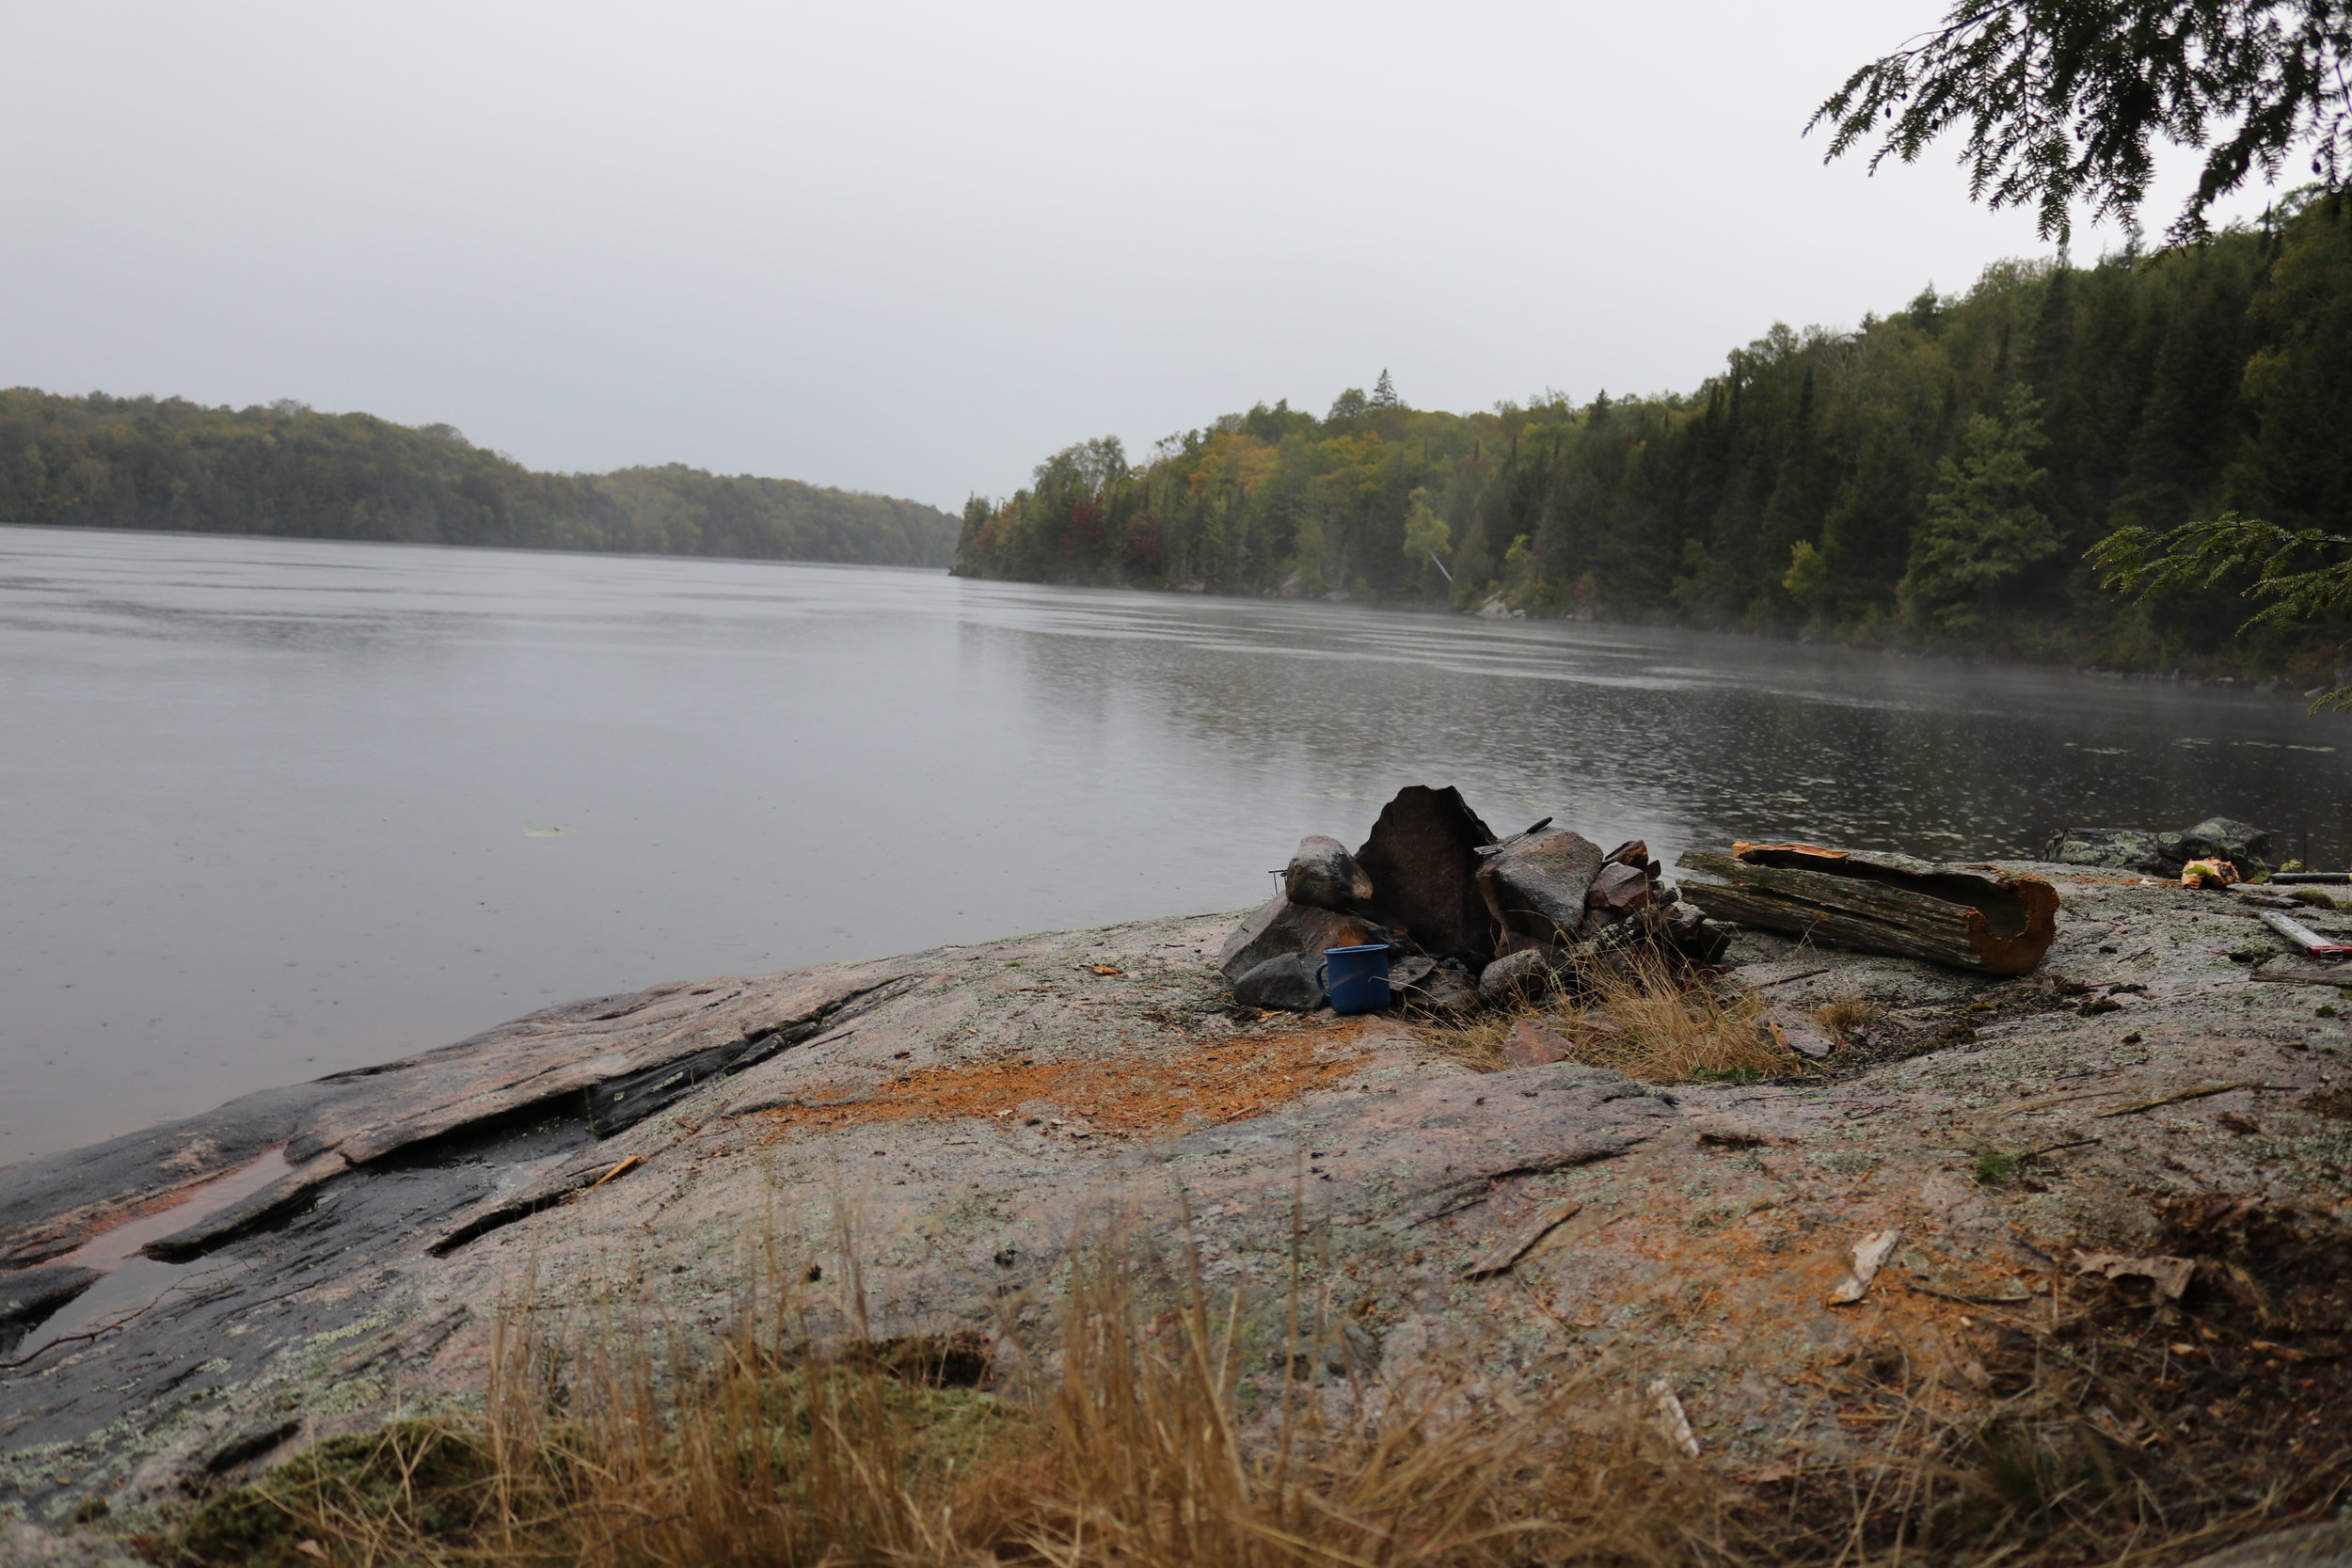 Rainy Morning View on Toad Lake